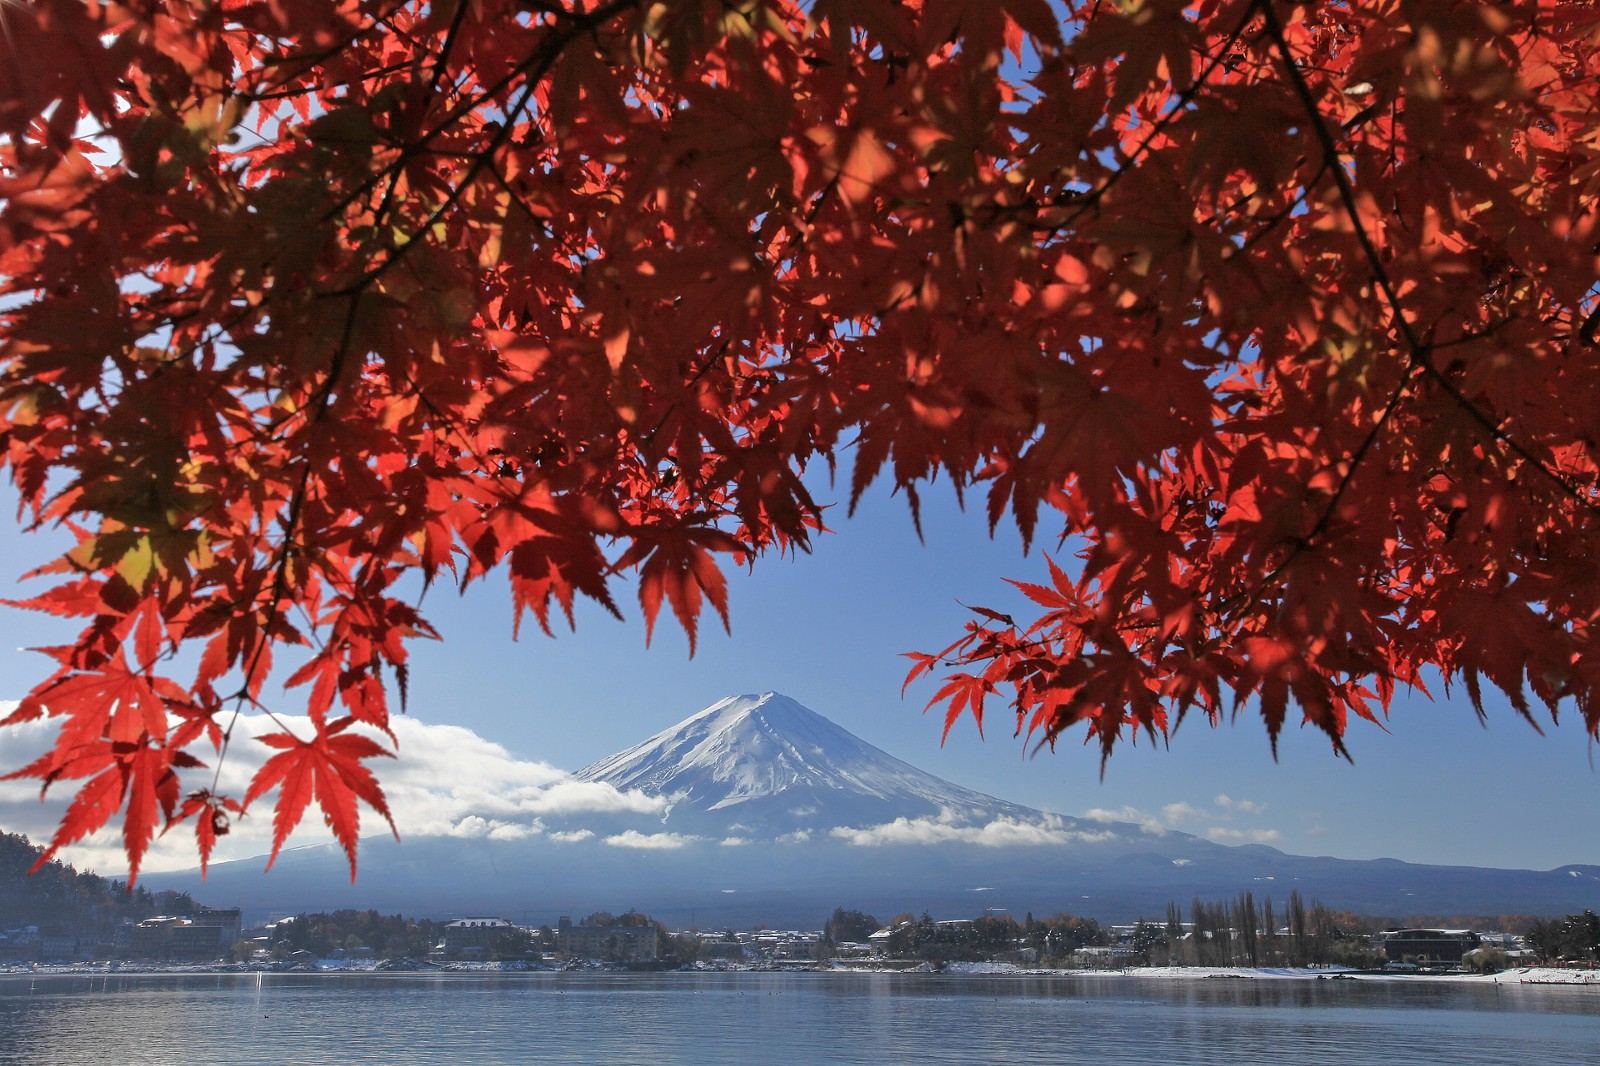 Mt Fuji and red maple leaves at Lake Kawaguchiko